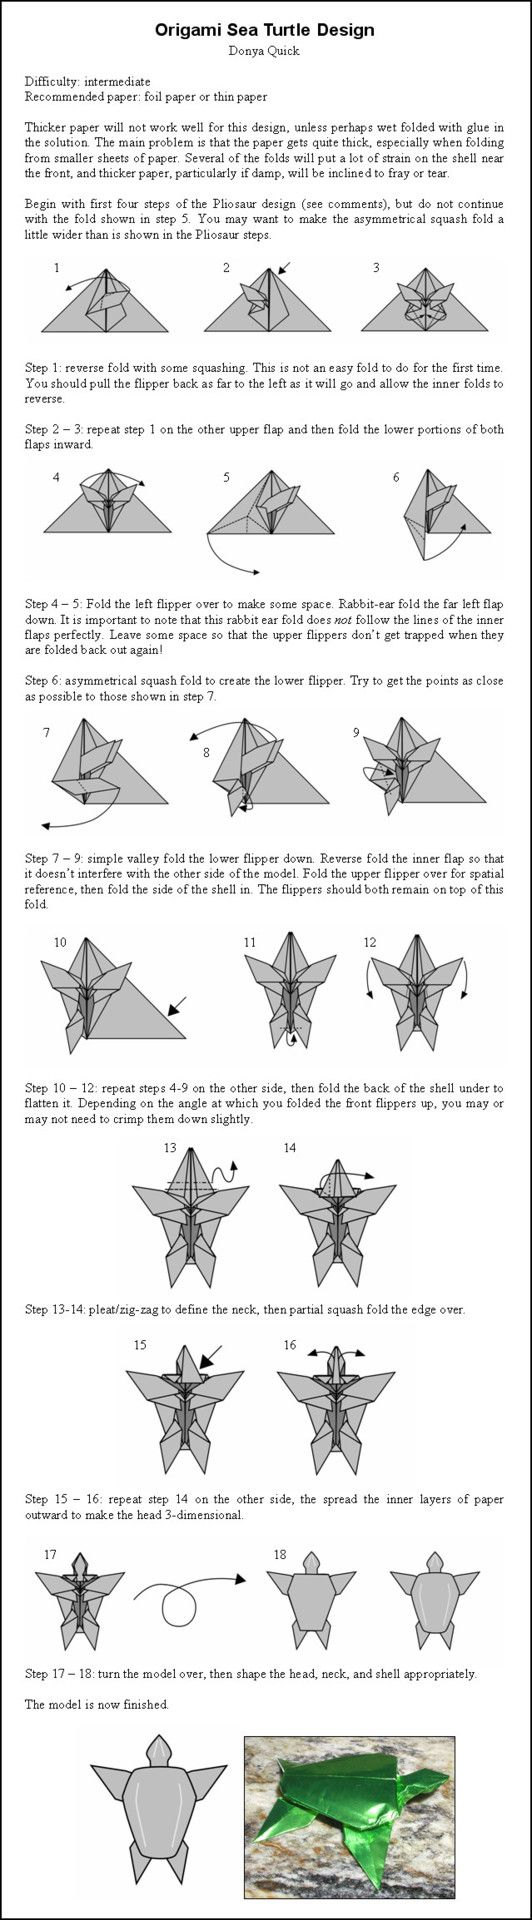 145 Best Dinosaurs Images On Pinterest Creative Crafts For Origamiorigami Diagramsorigami Free Diagrams And Other Useful Information About The Art Of Paper Folding Find This Pin More